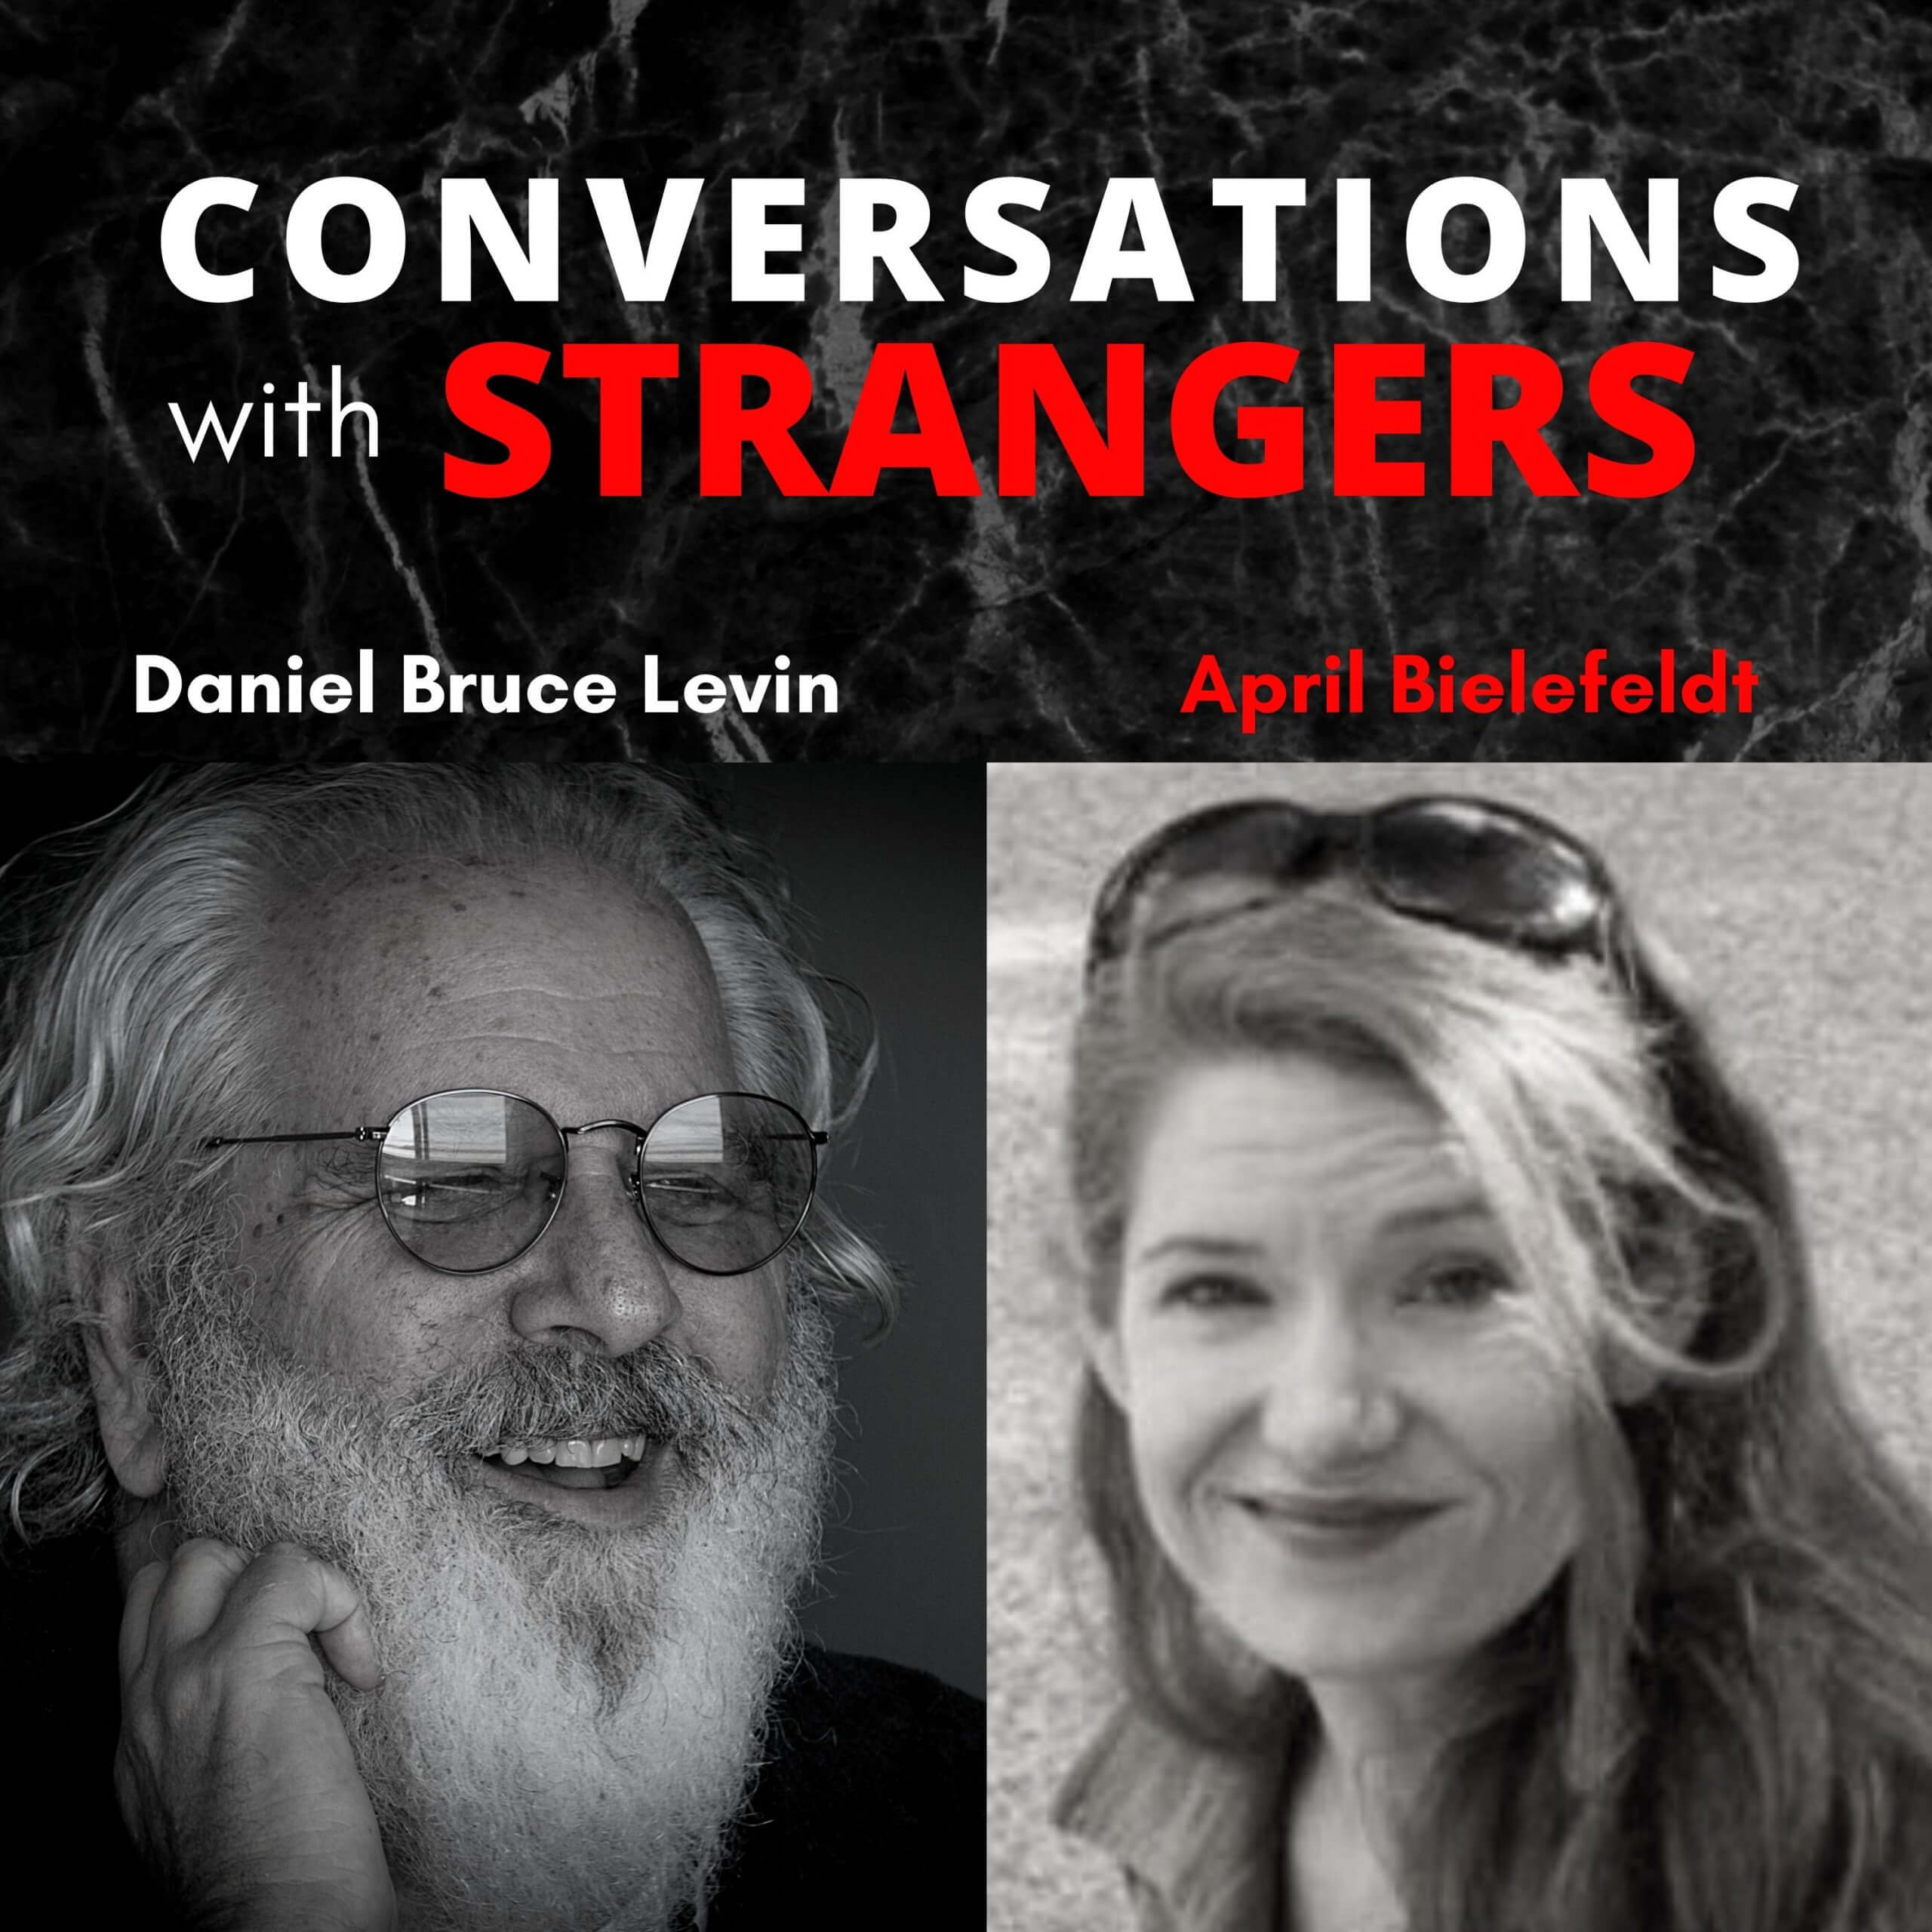 Conversations with Strangers feat. April Bielefeldt